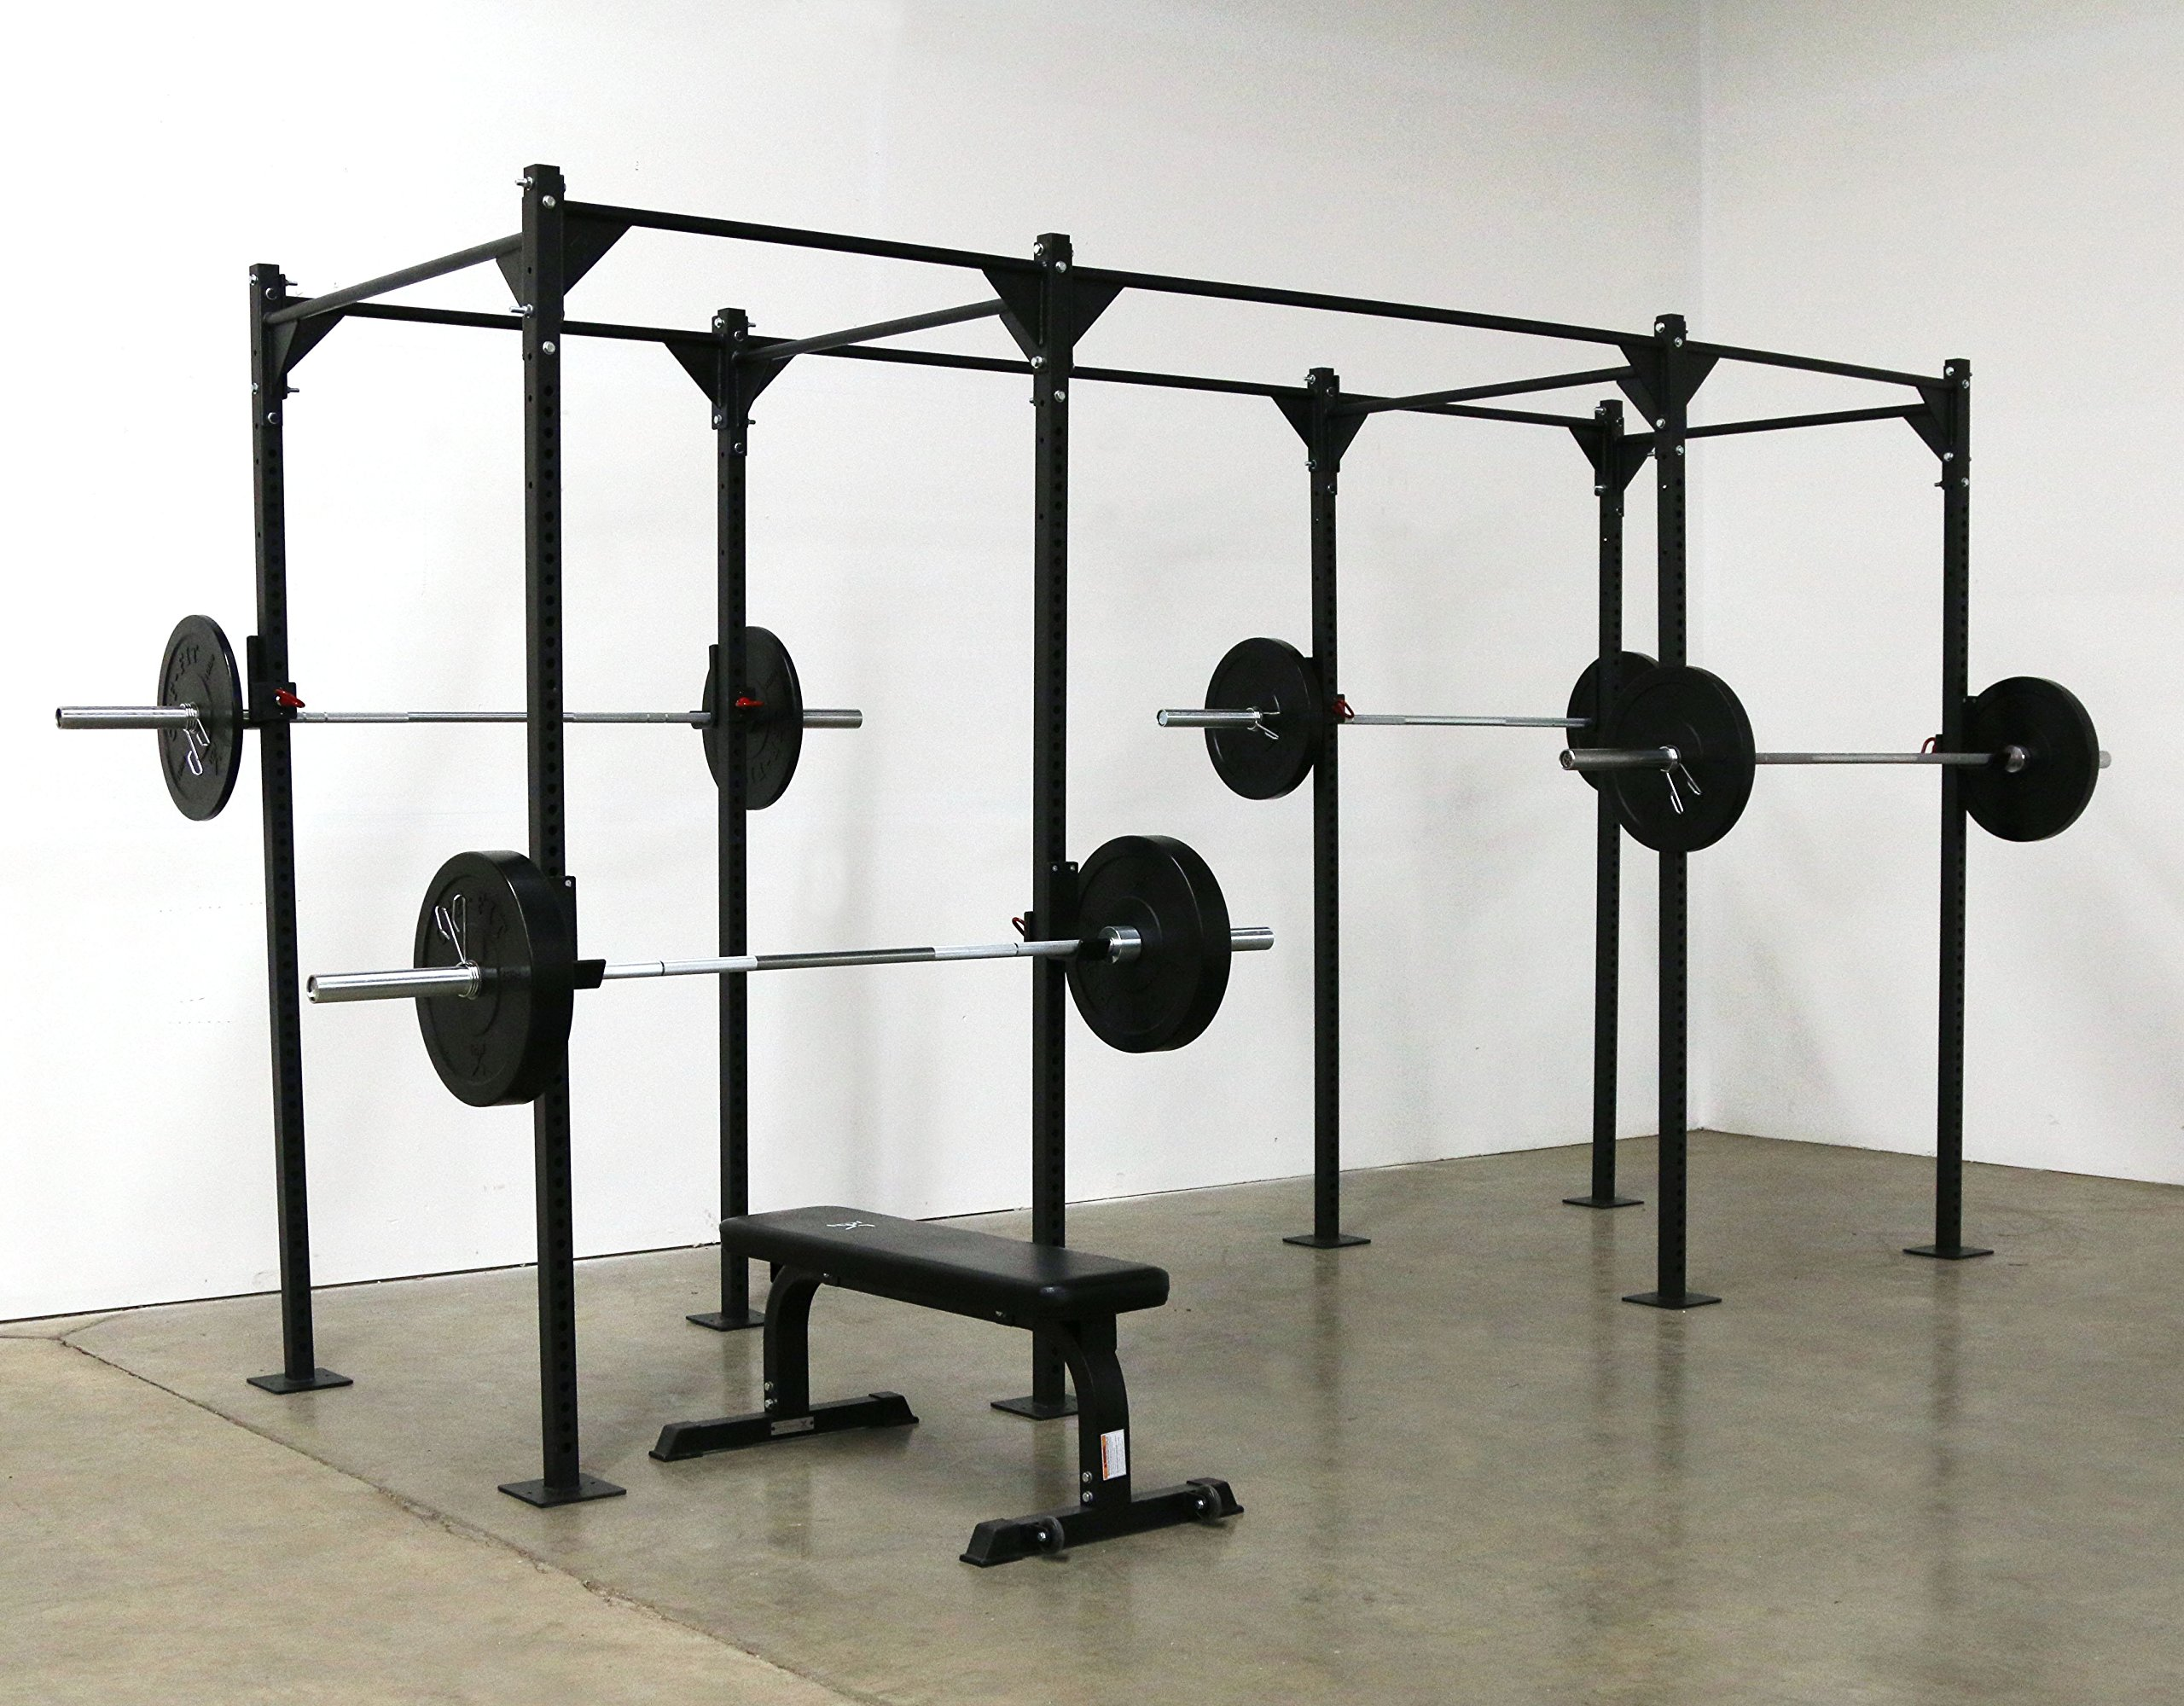 CFF 14' Rig Pull up Rig and Rack System by CFF-FIT (Image #1)